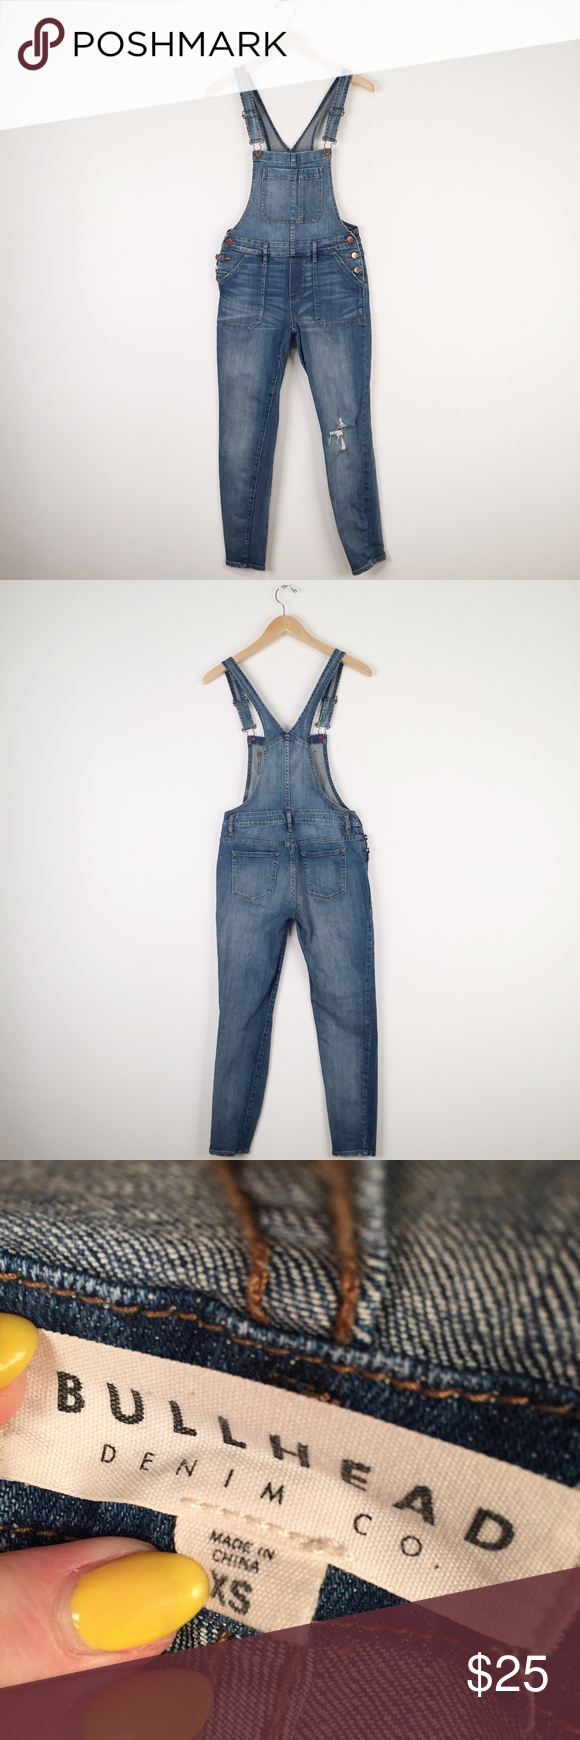 5c6f719b5d4 Bullhead Denim Skinny Overalls Distressed skinny overalls. So cute with a  crop top for summer